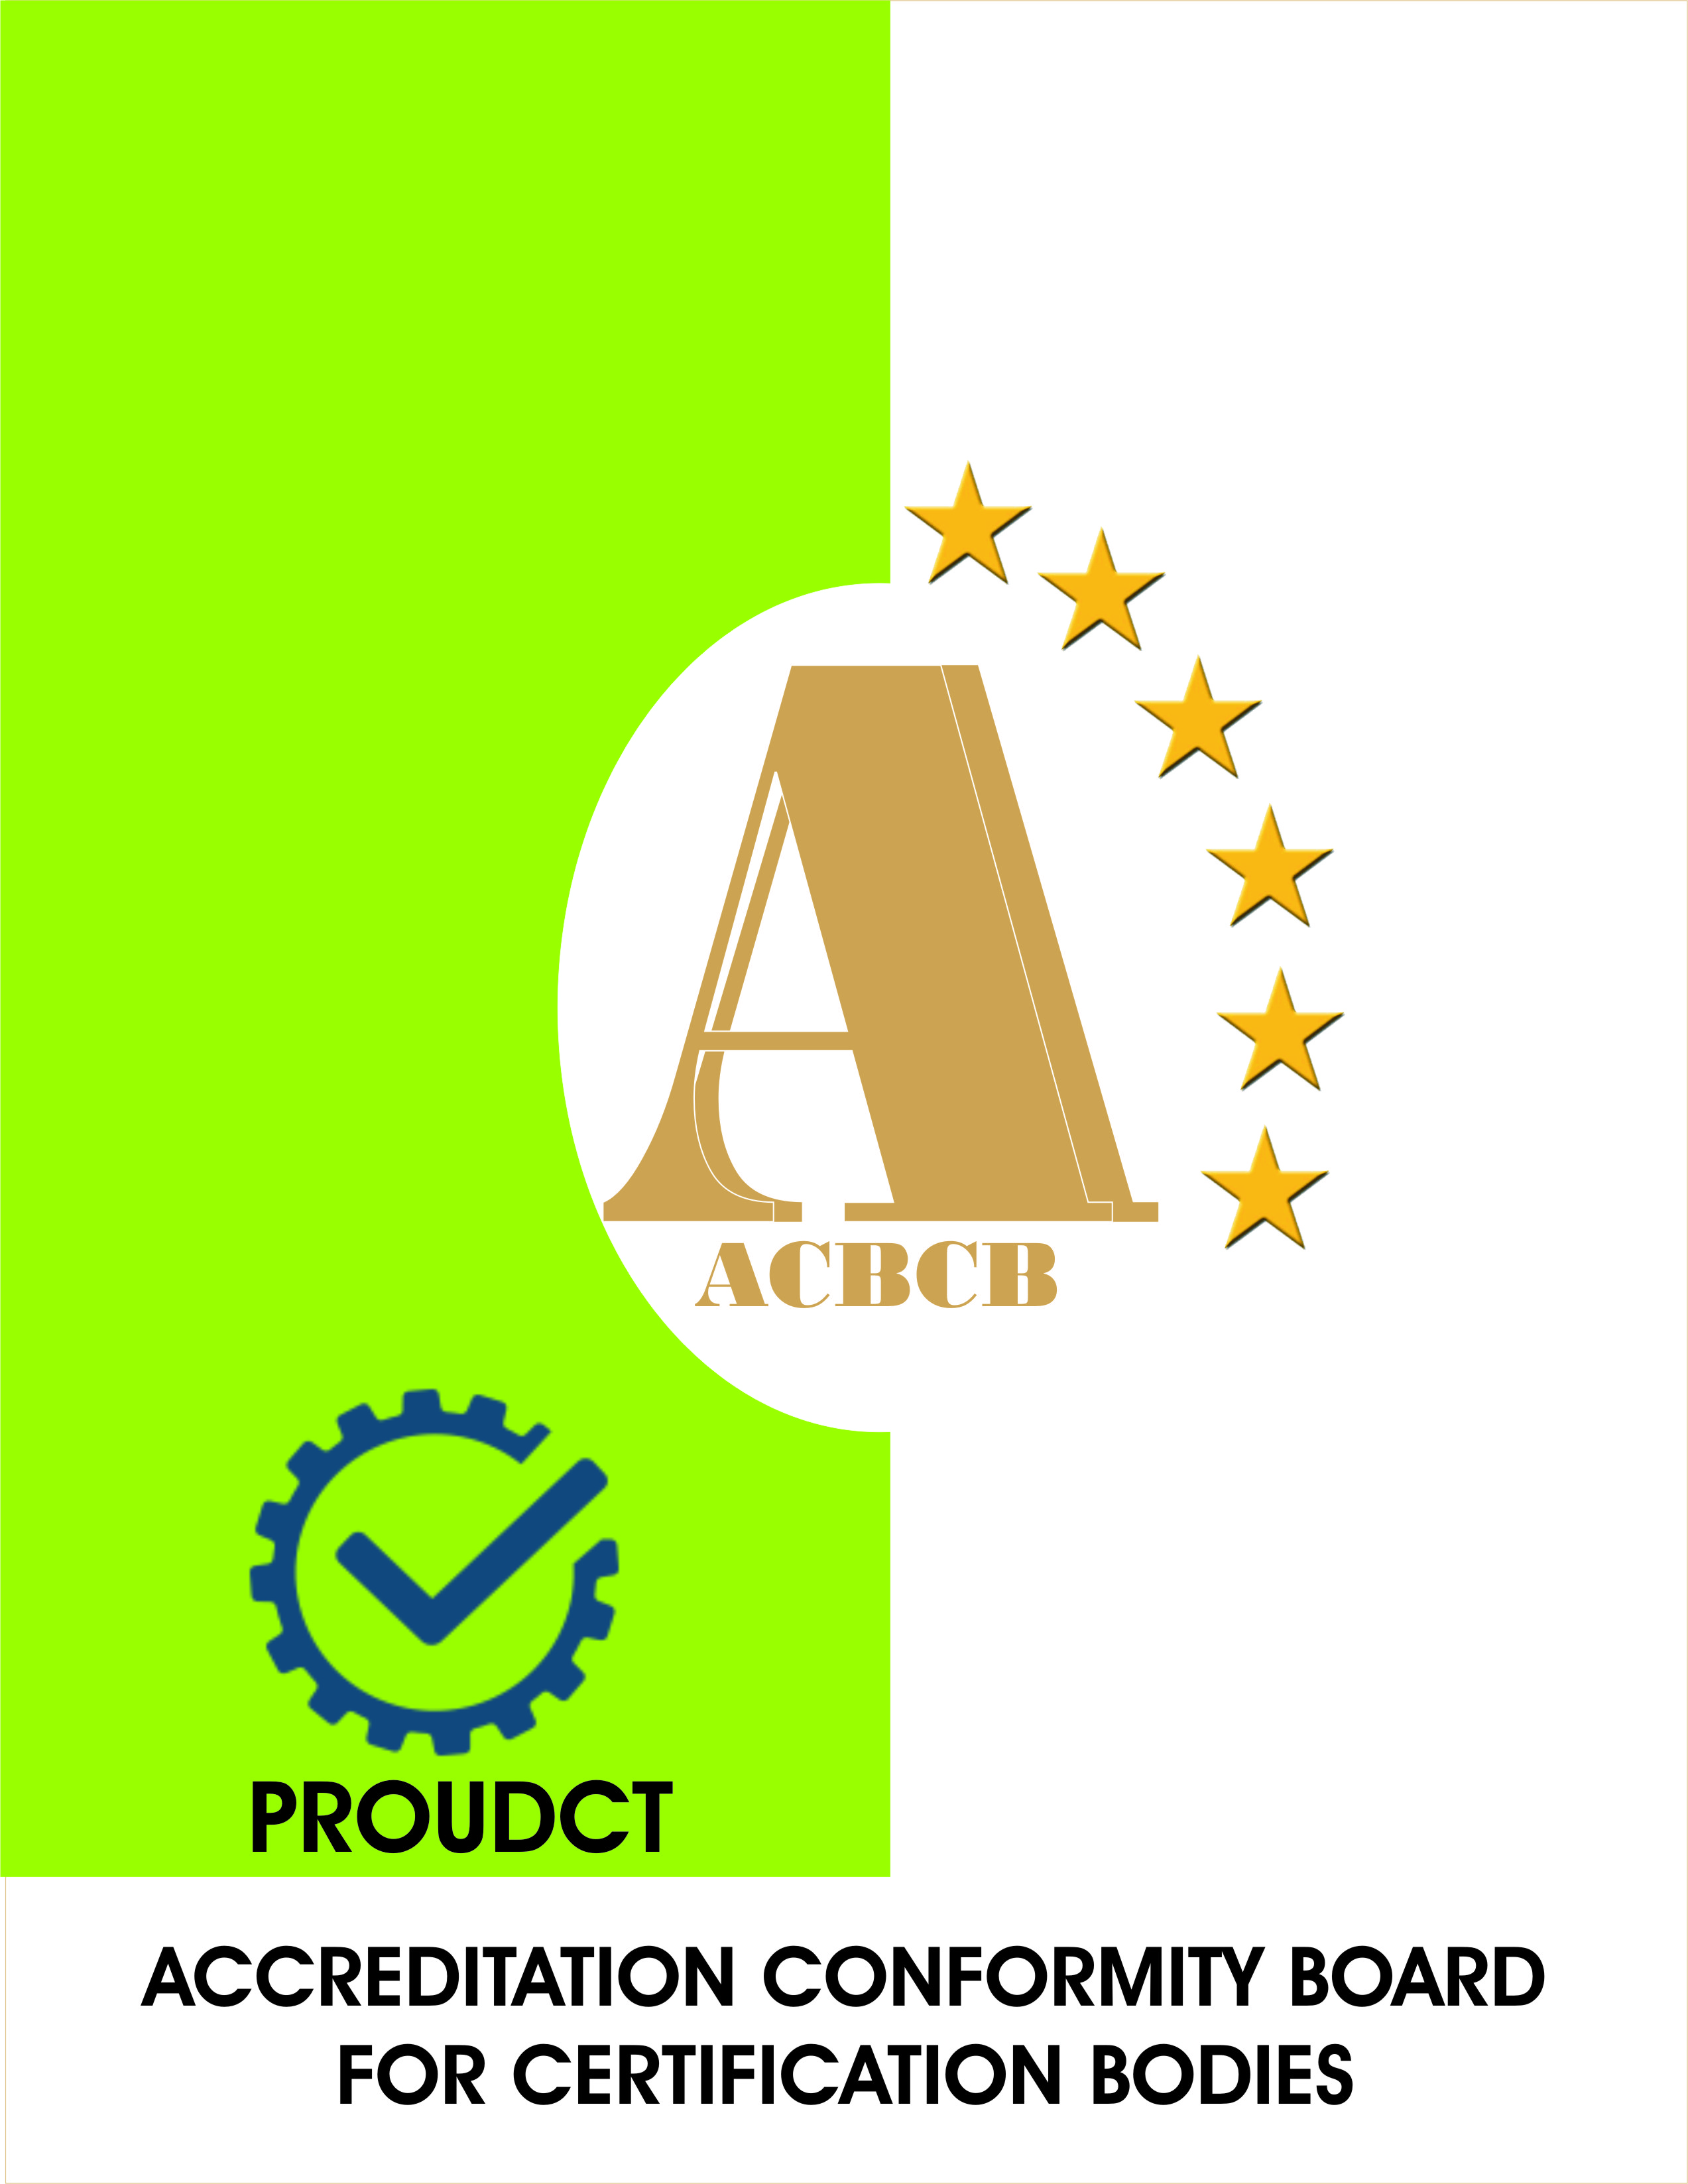 ACBCB PRODUCT CERTIFICATION